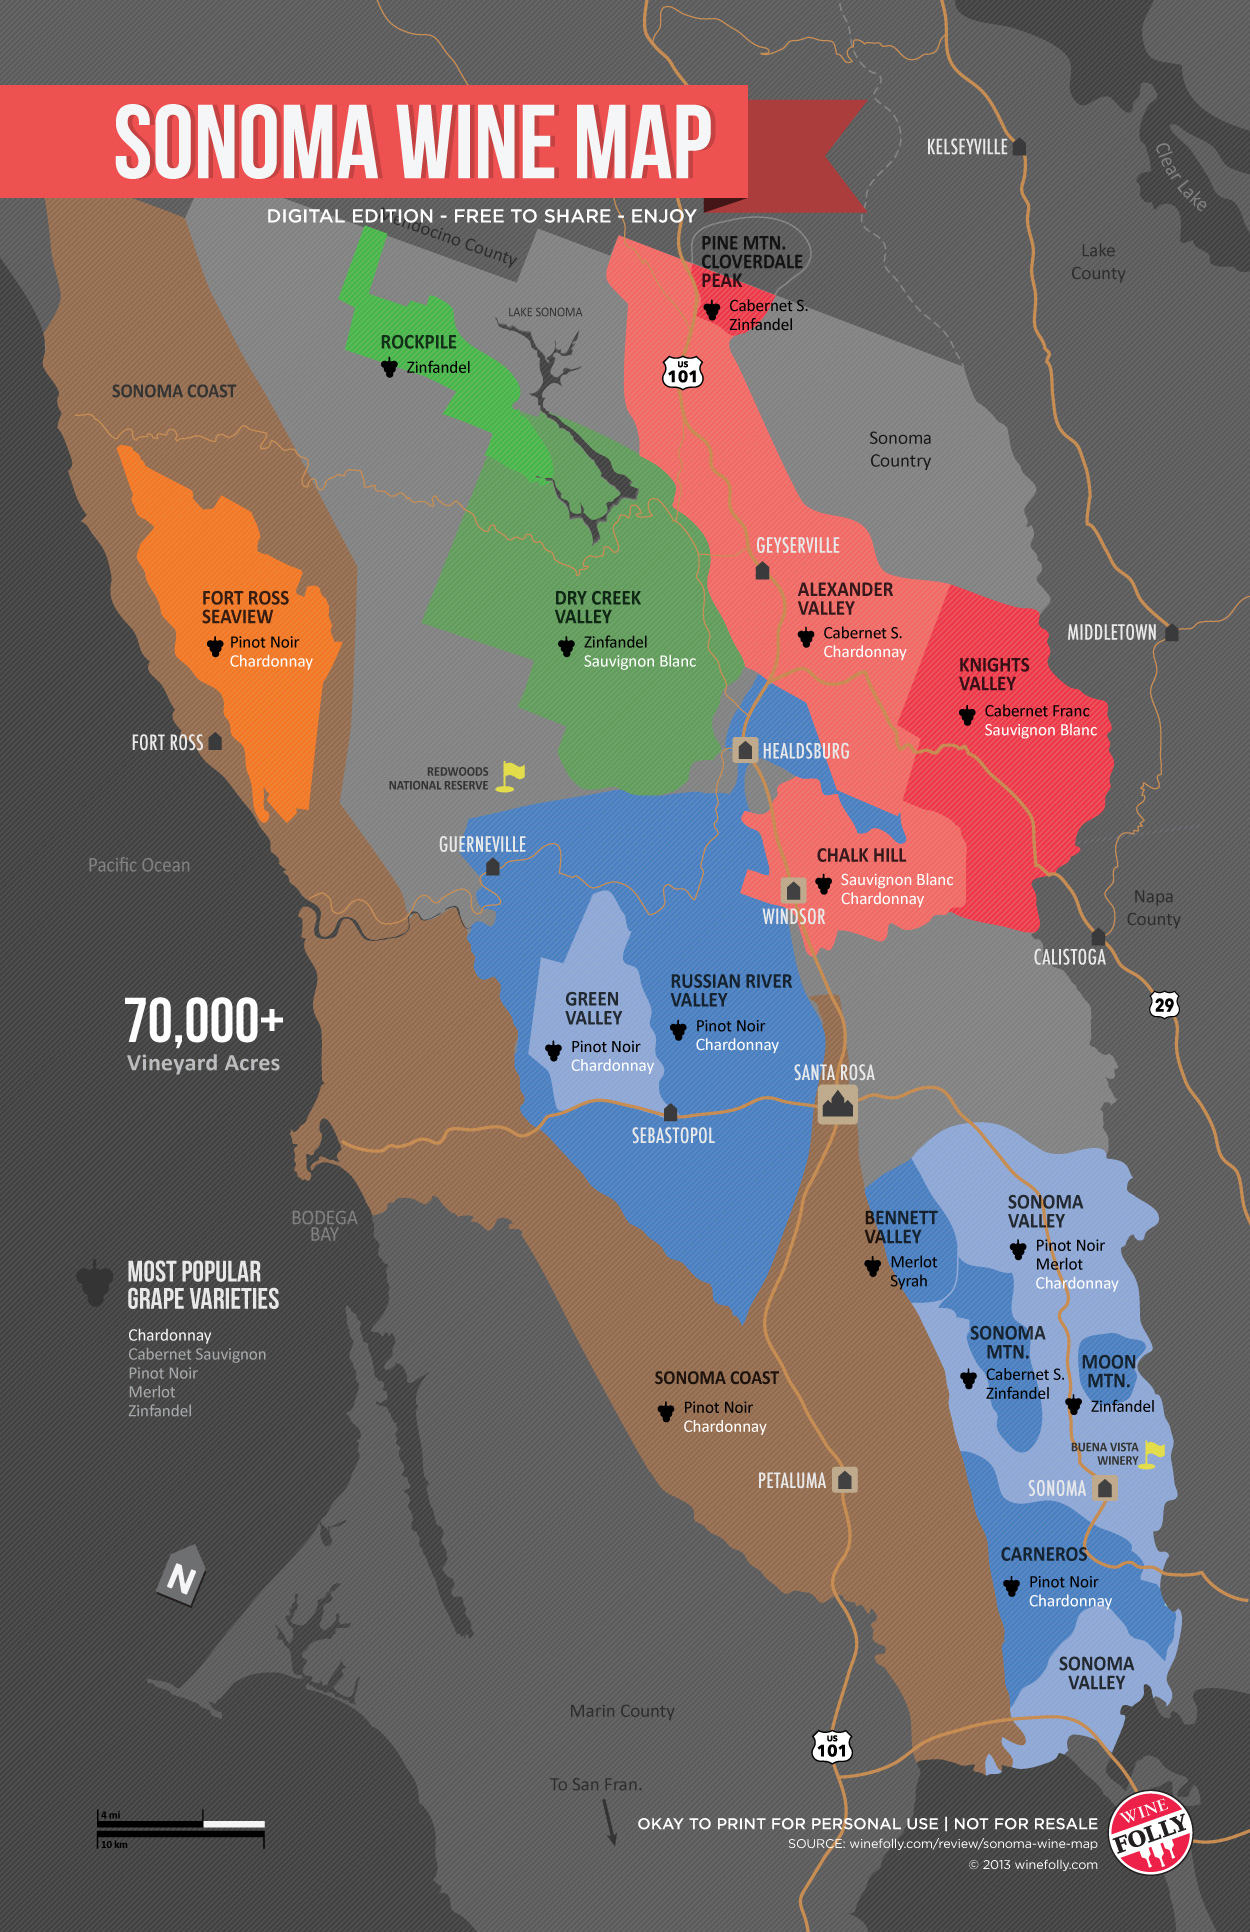 Sonoma Wine Map (Poster) | Wine Folly - California Wine Map Poster